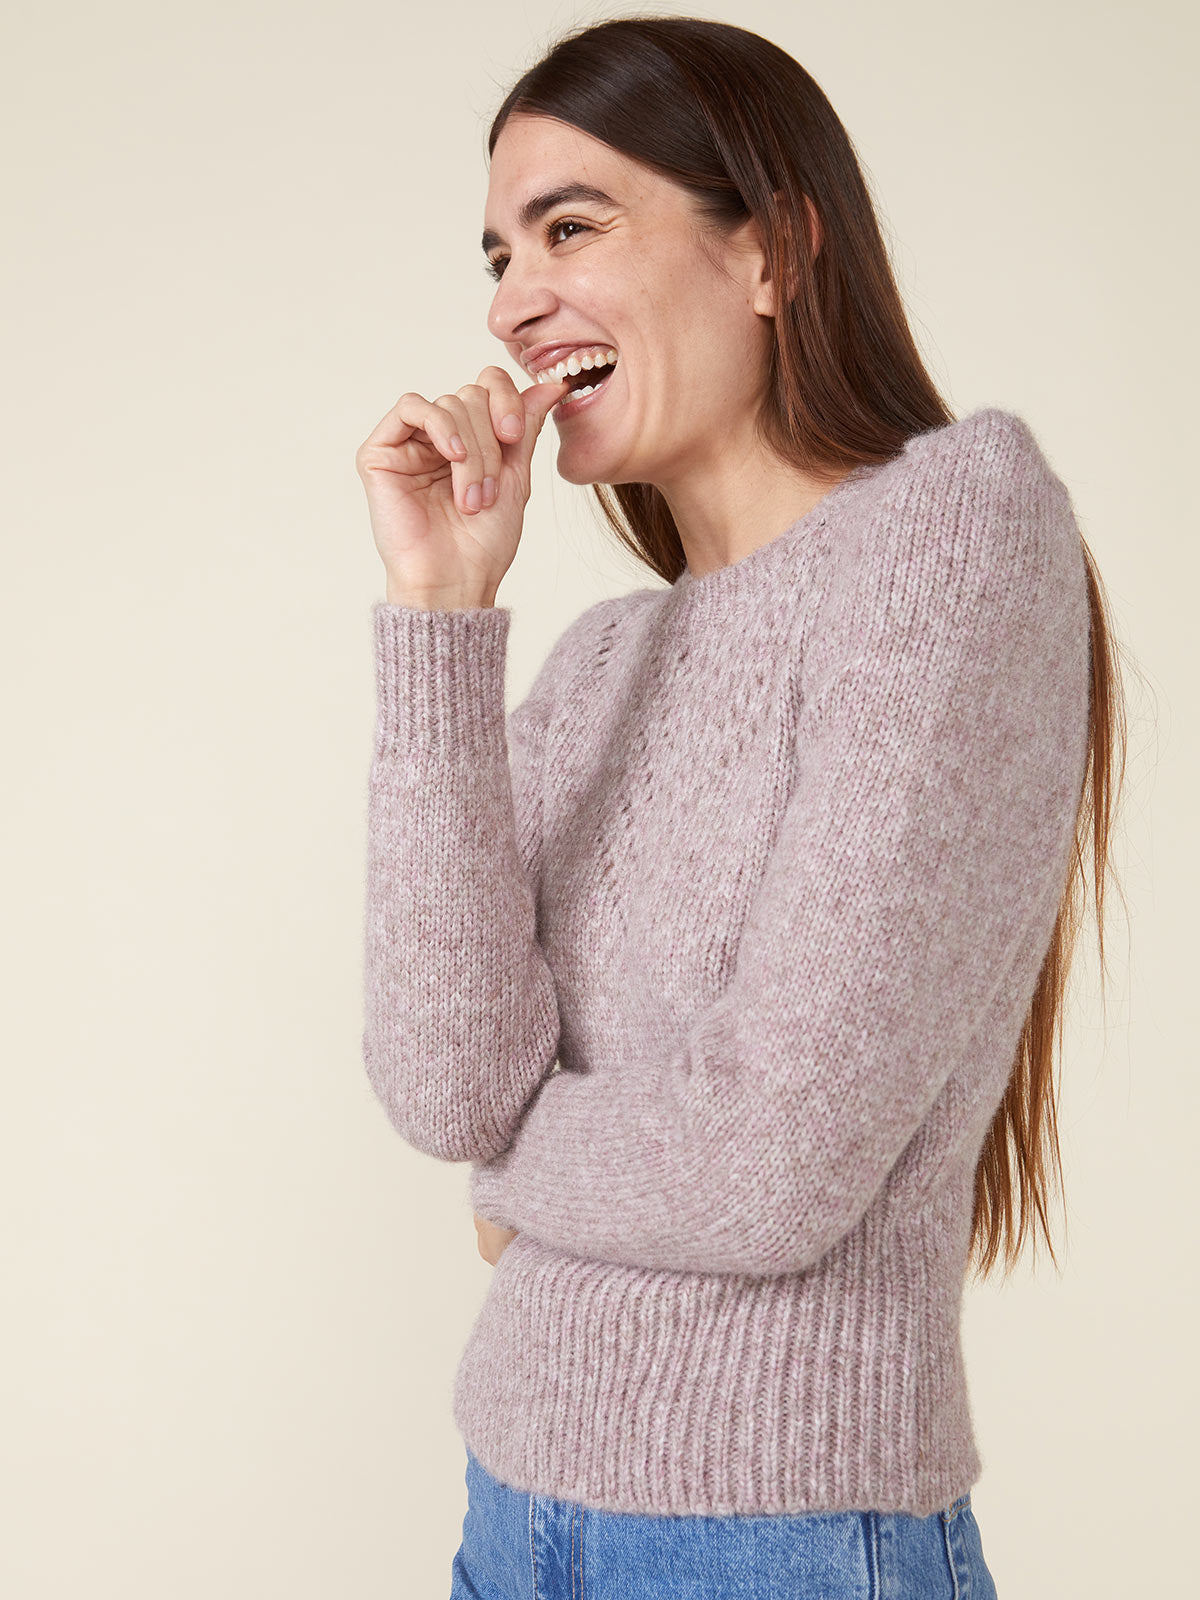 Sissy Sweater | Heather Rose Sissy Sweater | Heather Rose